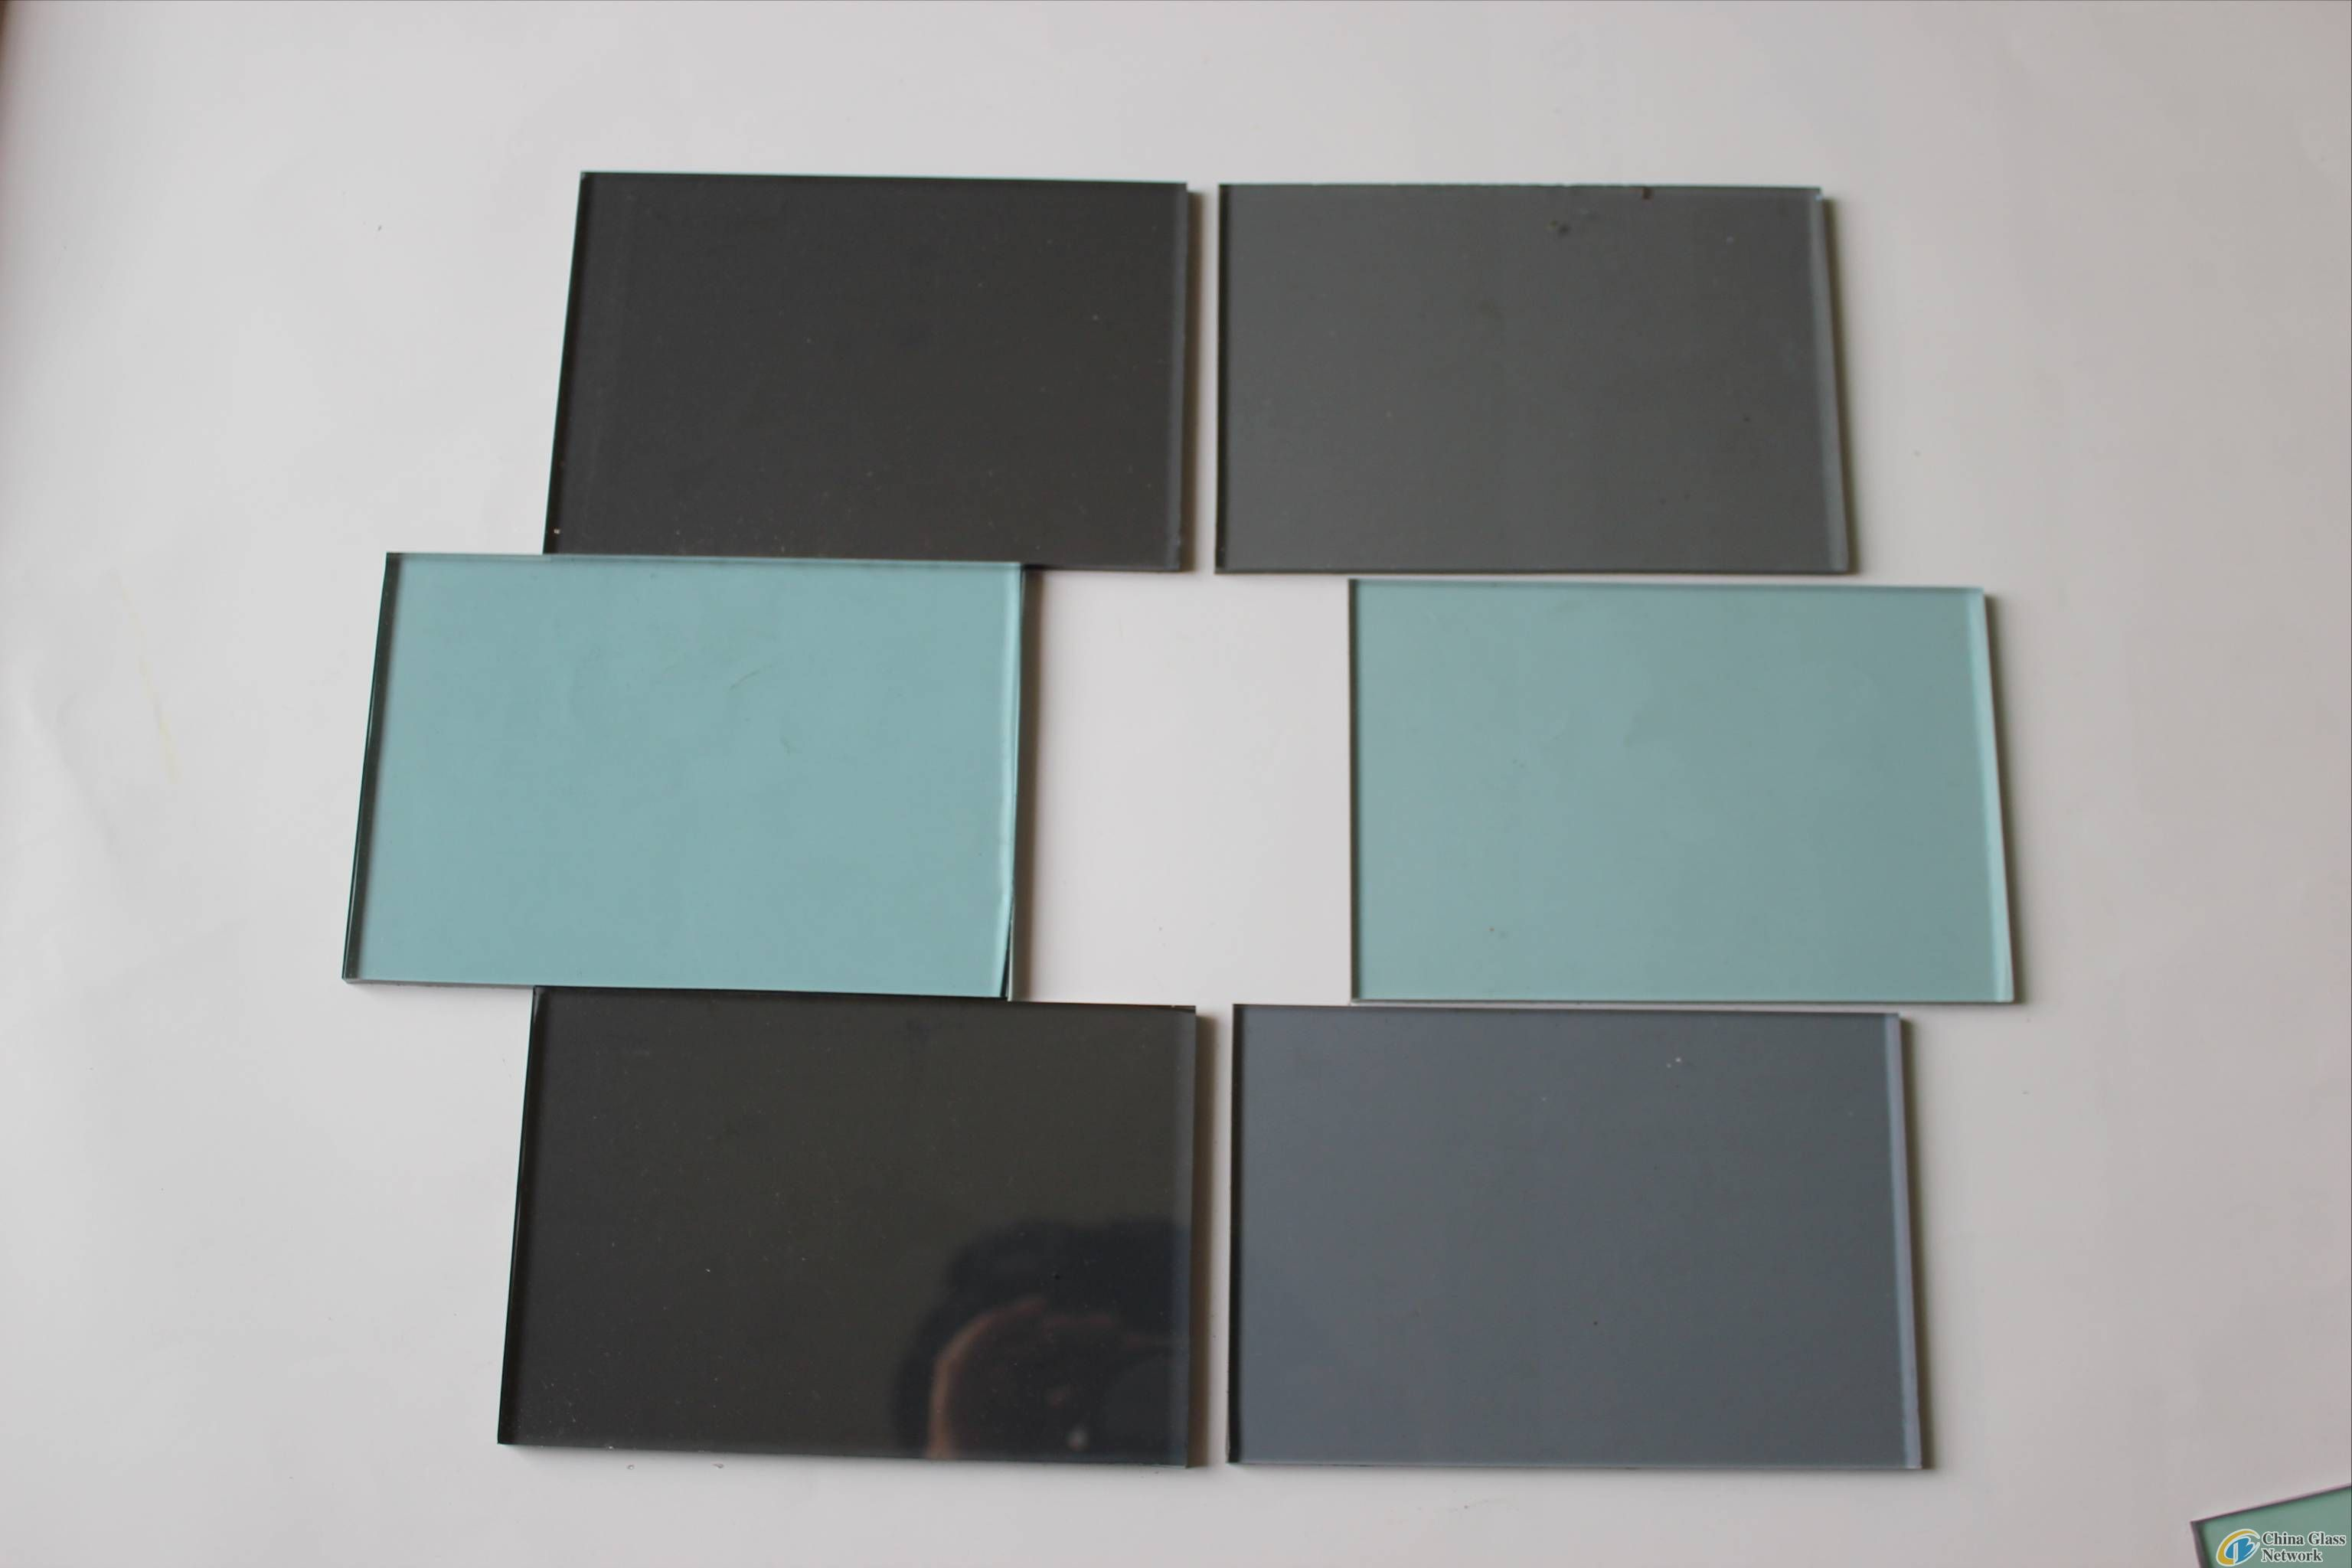 Lanxing grey reflective glass